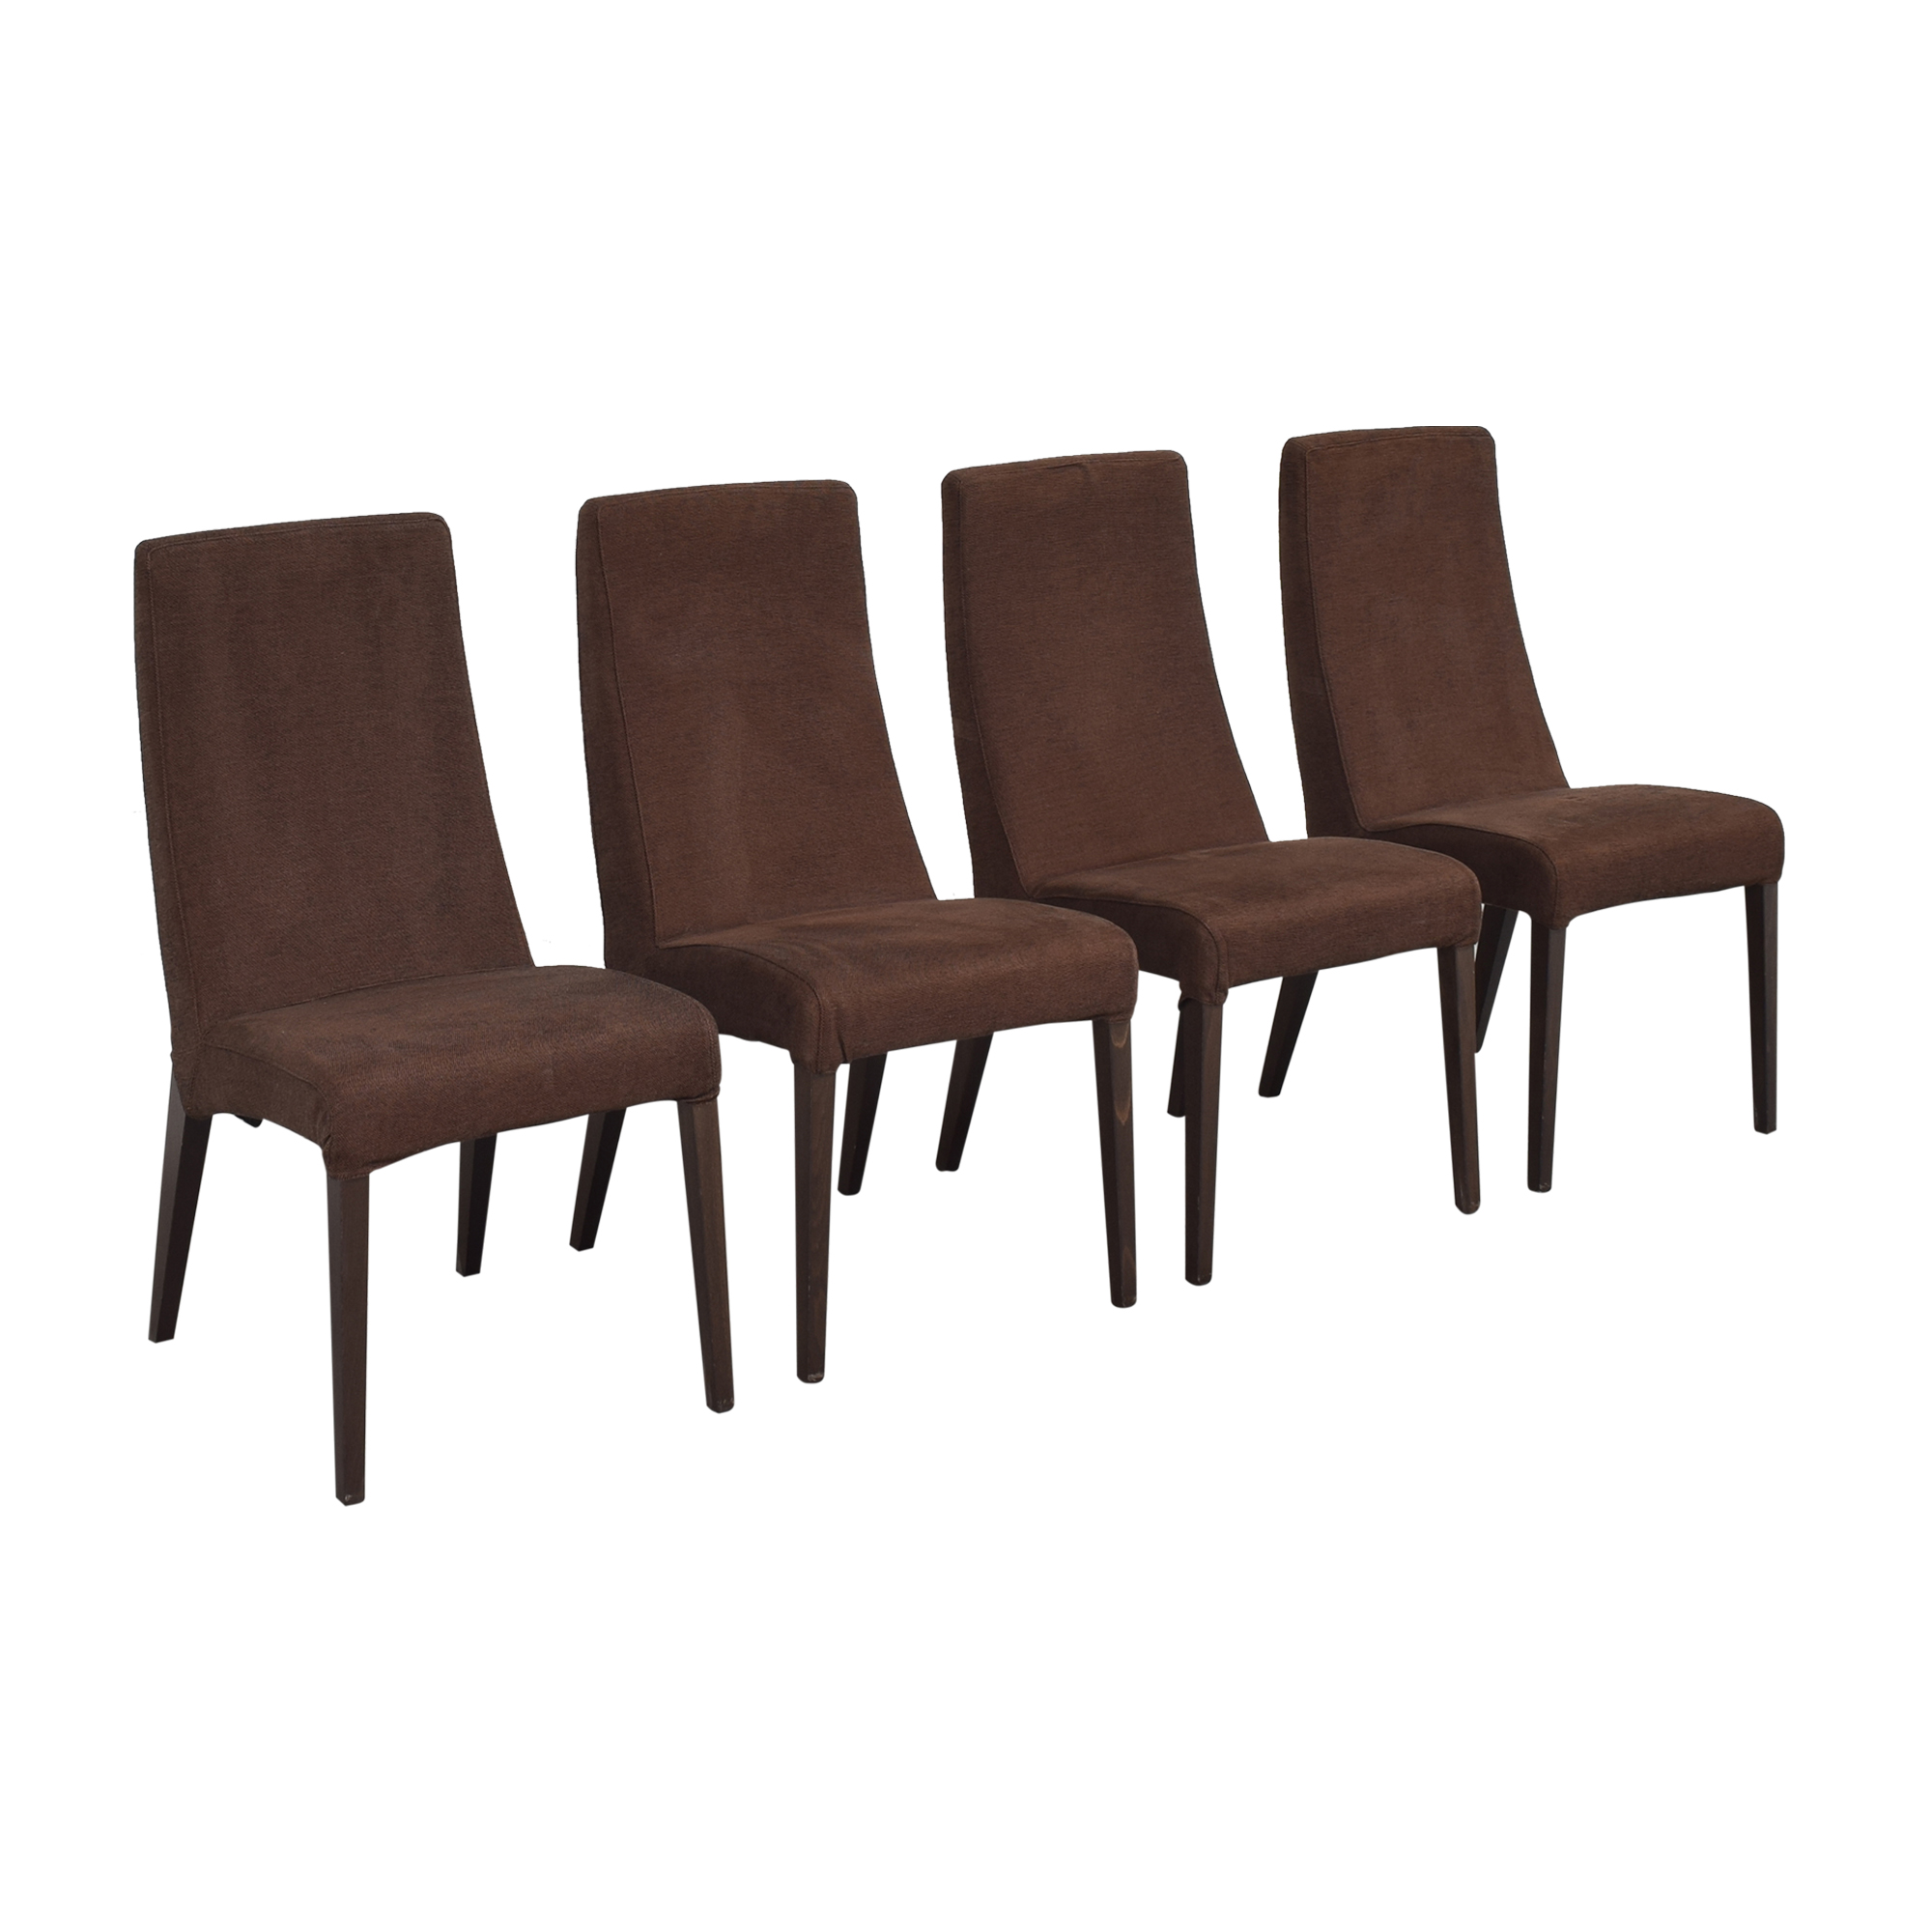 Calligaris Calligaris Upholstered Dining Chairs used